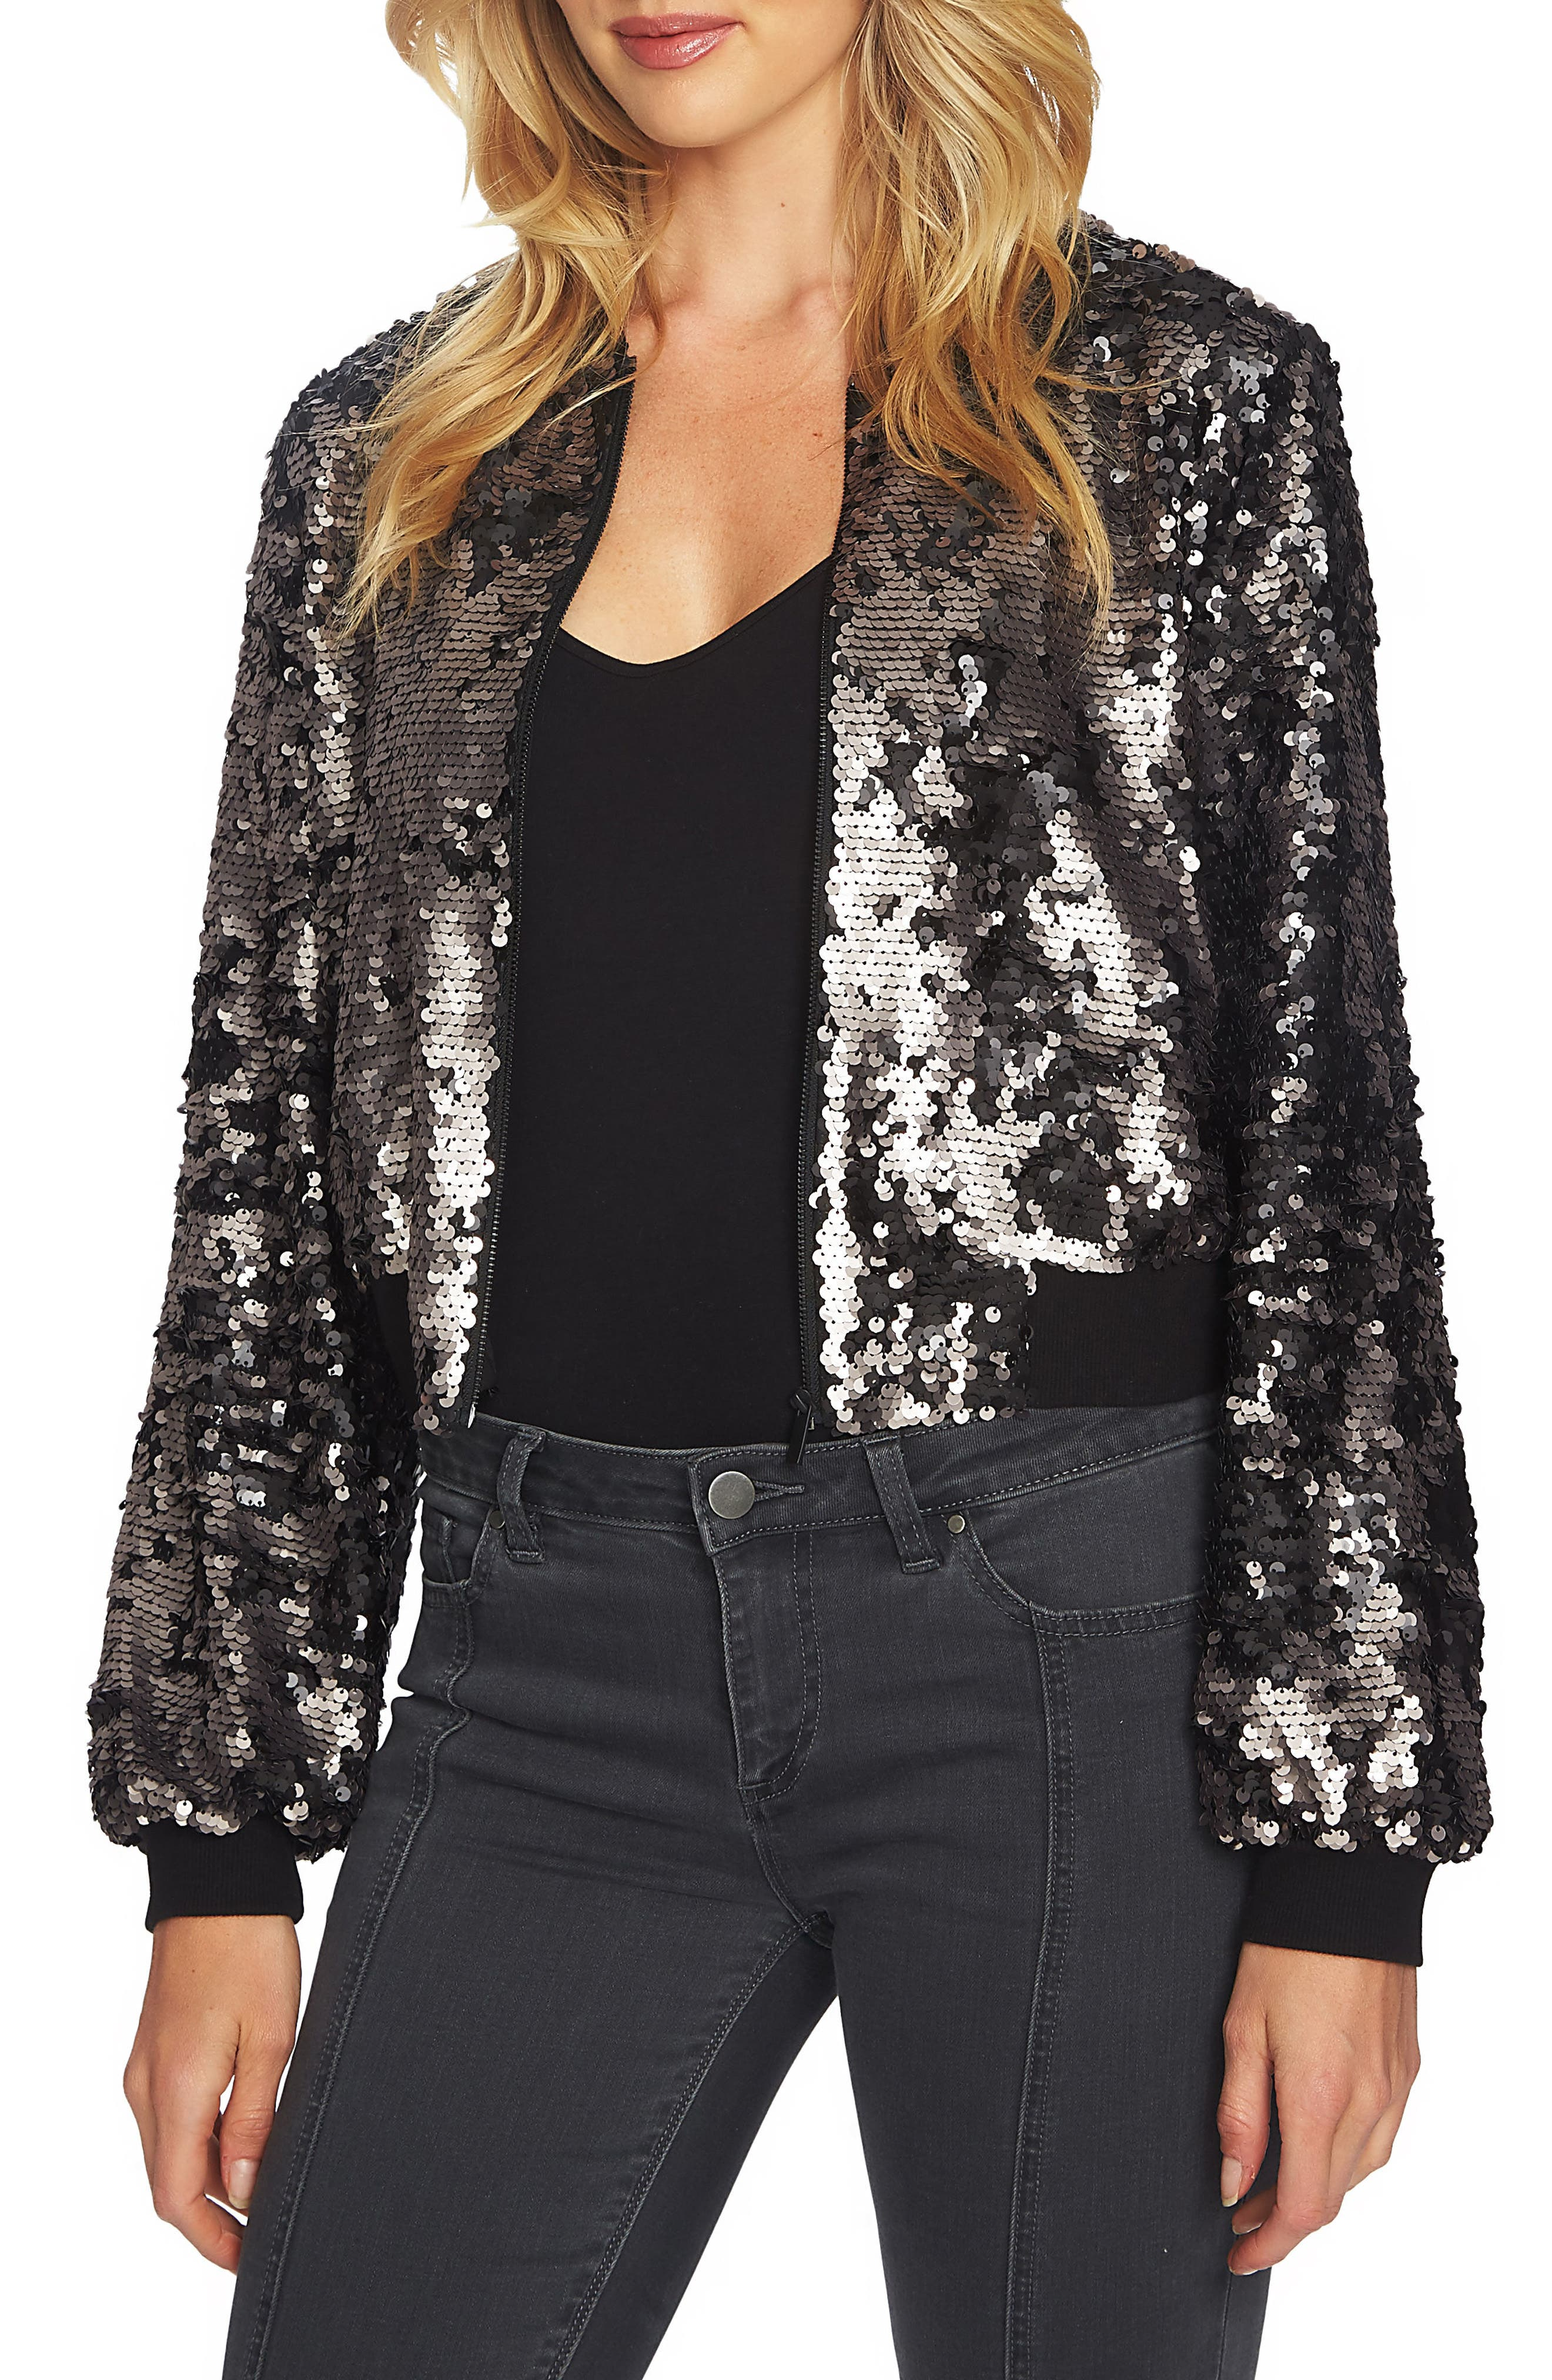 Alternate Image 1 Selected - 1.STATE Sequin Crop Bomber Jacket